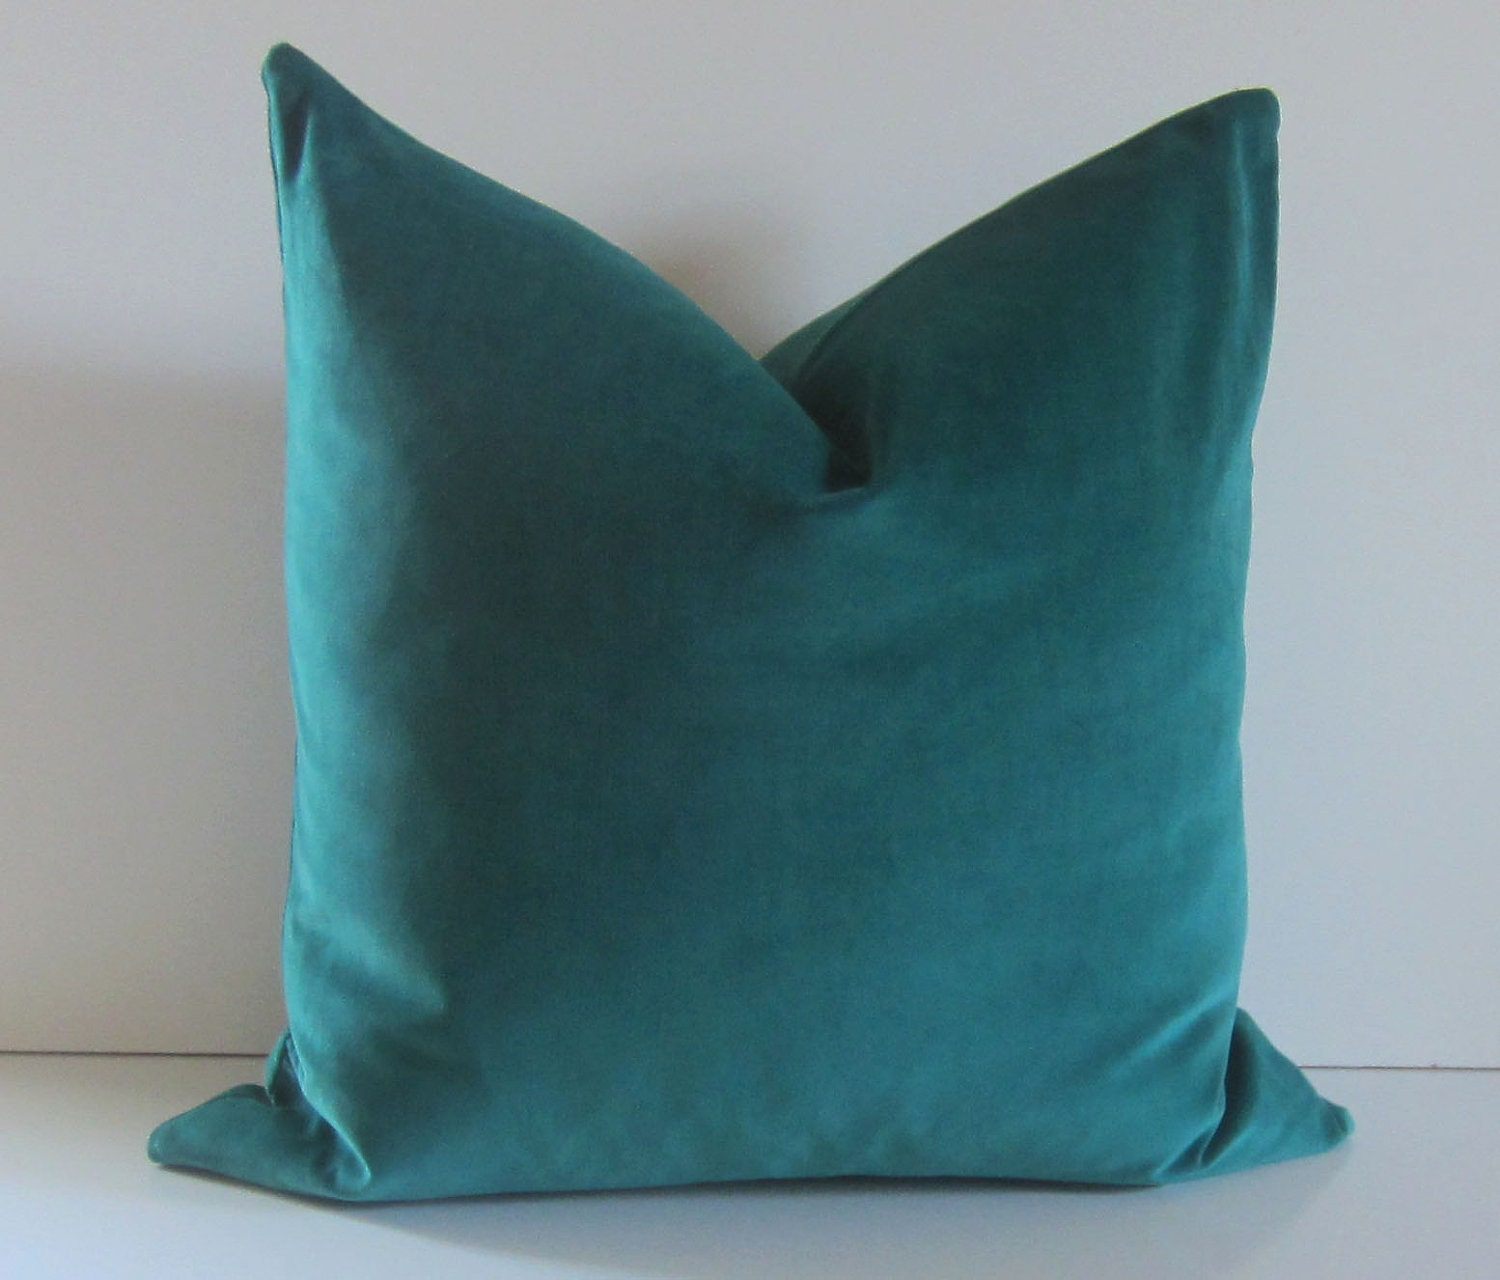 Velvet Decorative Pillow Covers : Decorative Pillow Cover 20 inch teal velvet by studiotullia